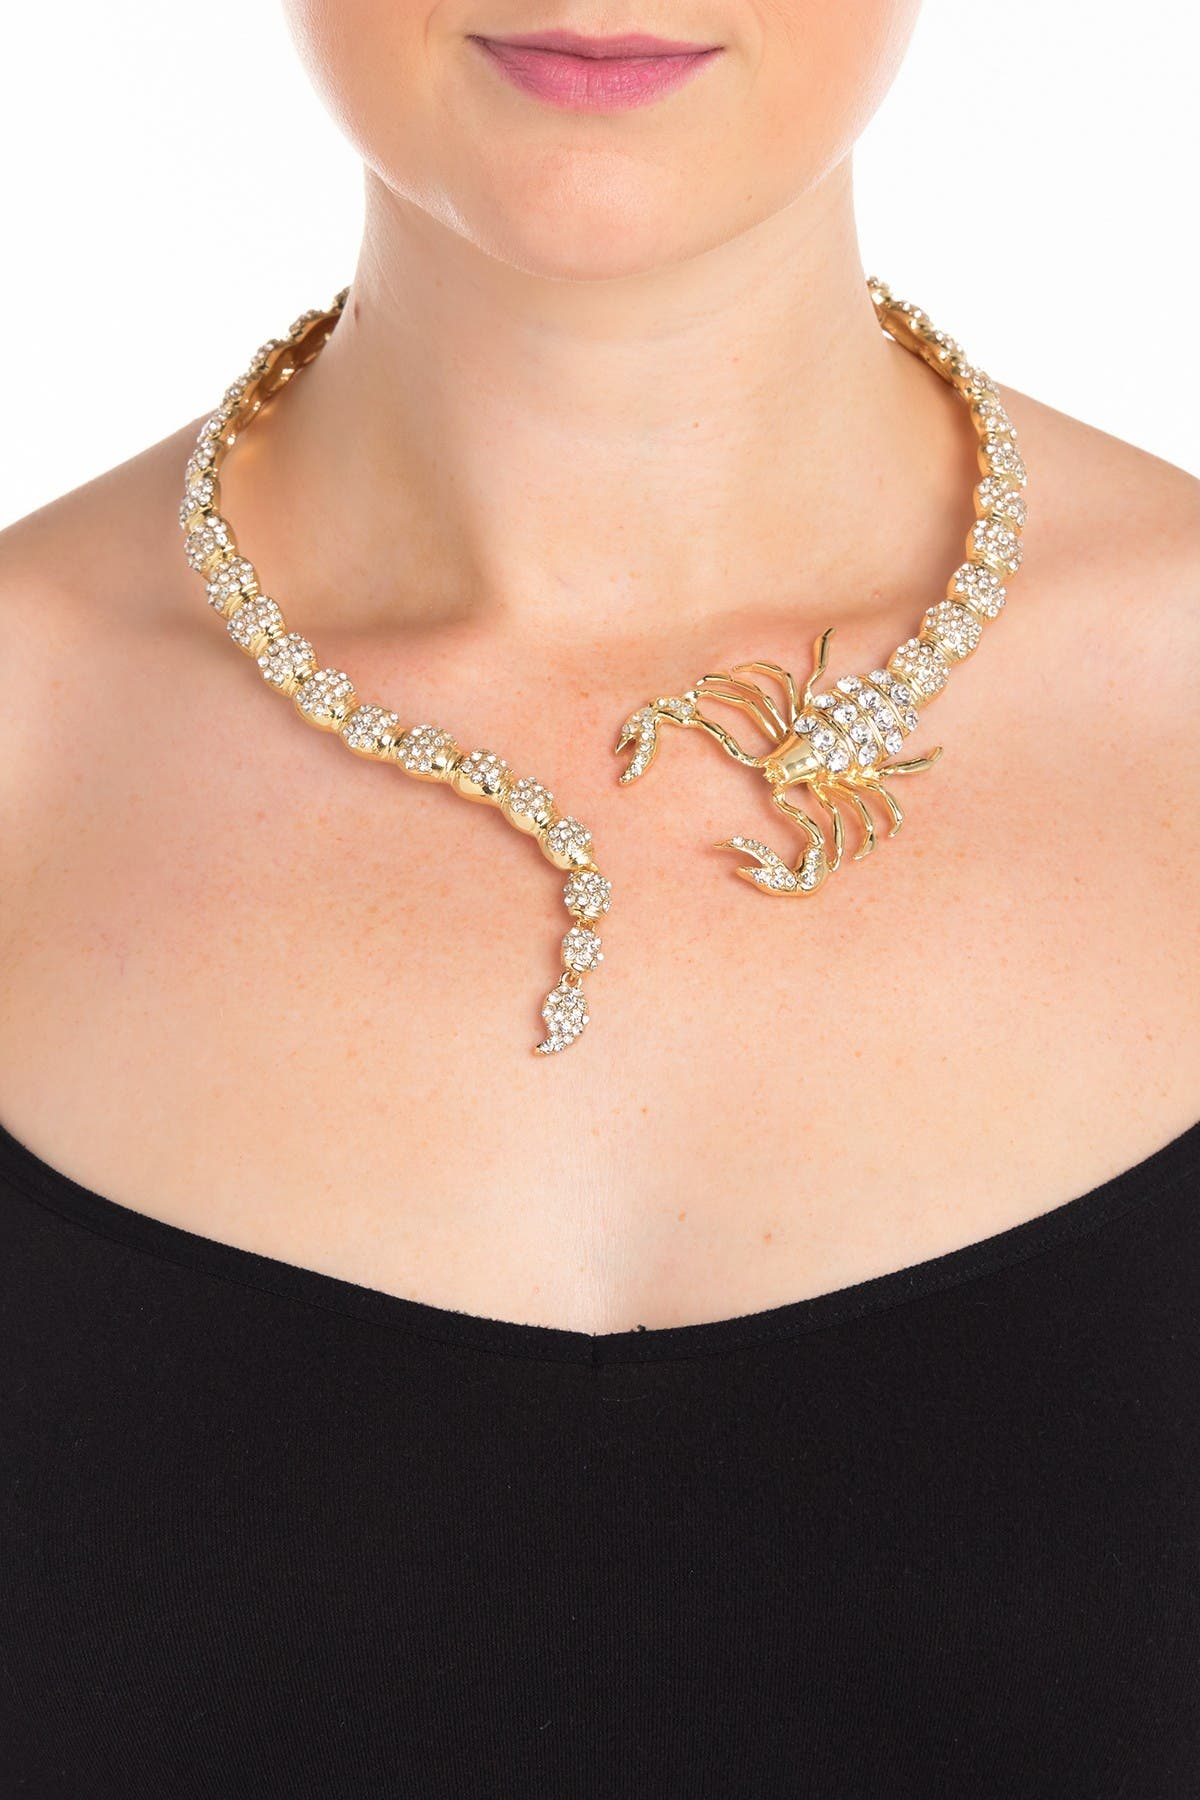 Eye Candy Los Angeles Crystal Embellished Scorpion Collar Necklace at Nordstrom Rack